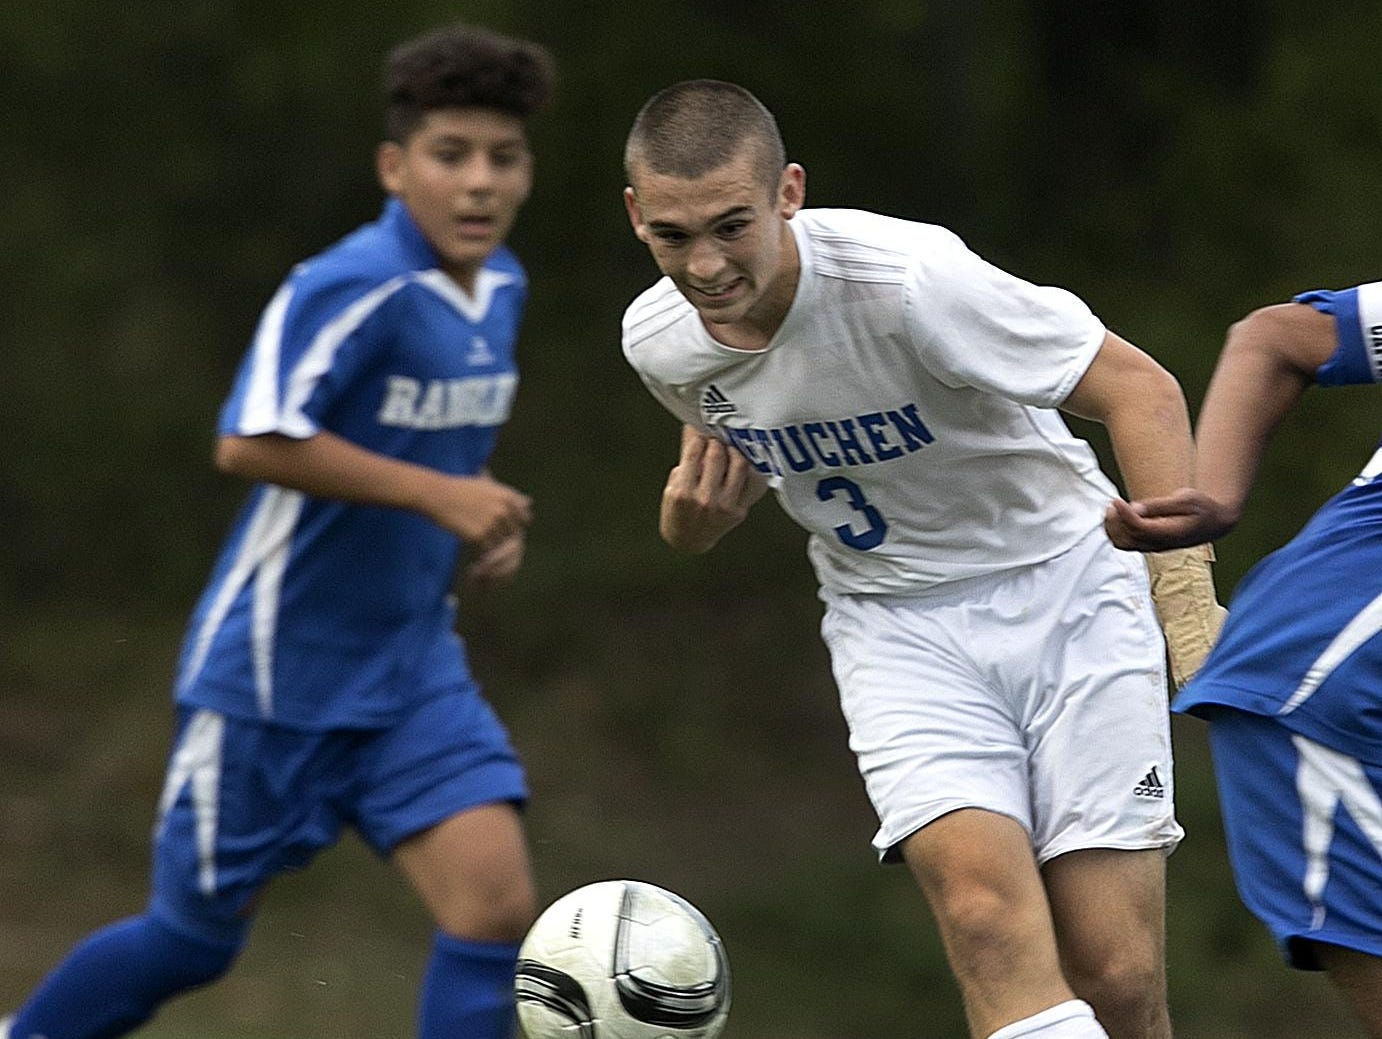 Metuchen's Cameron O'Connell goes after the ball against Carteret on Monday.